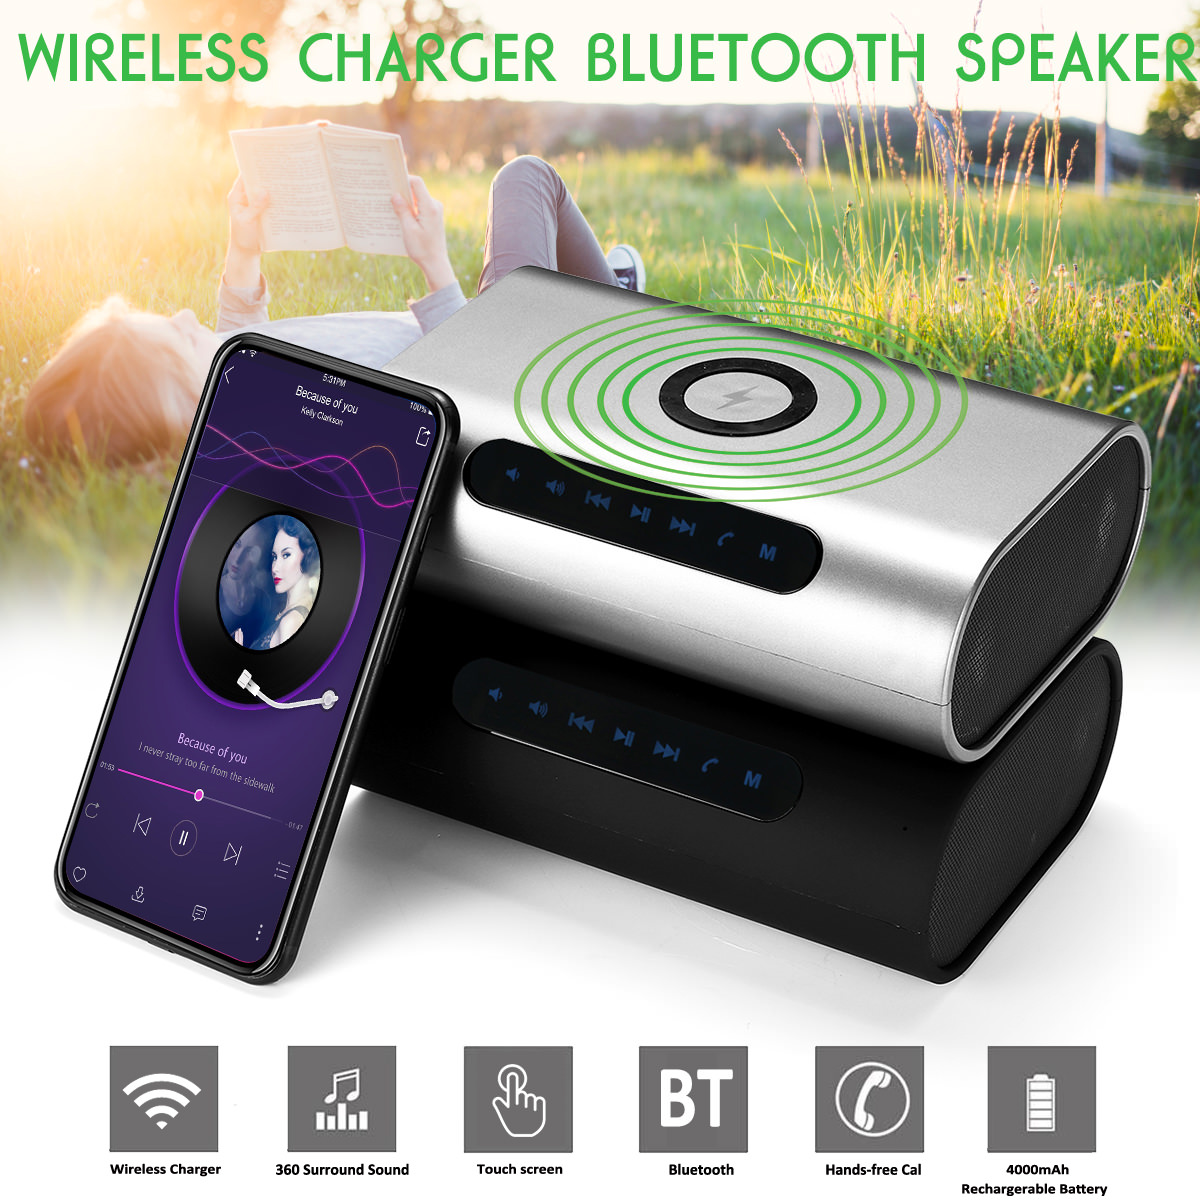 3 in 1 portable wireless charger/bluetooth speaker/power bank